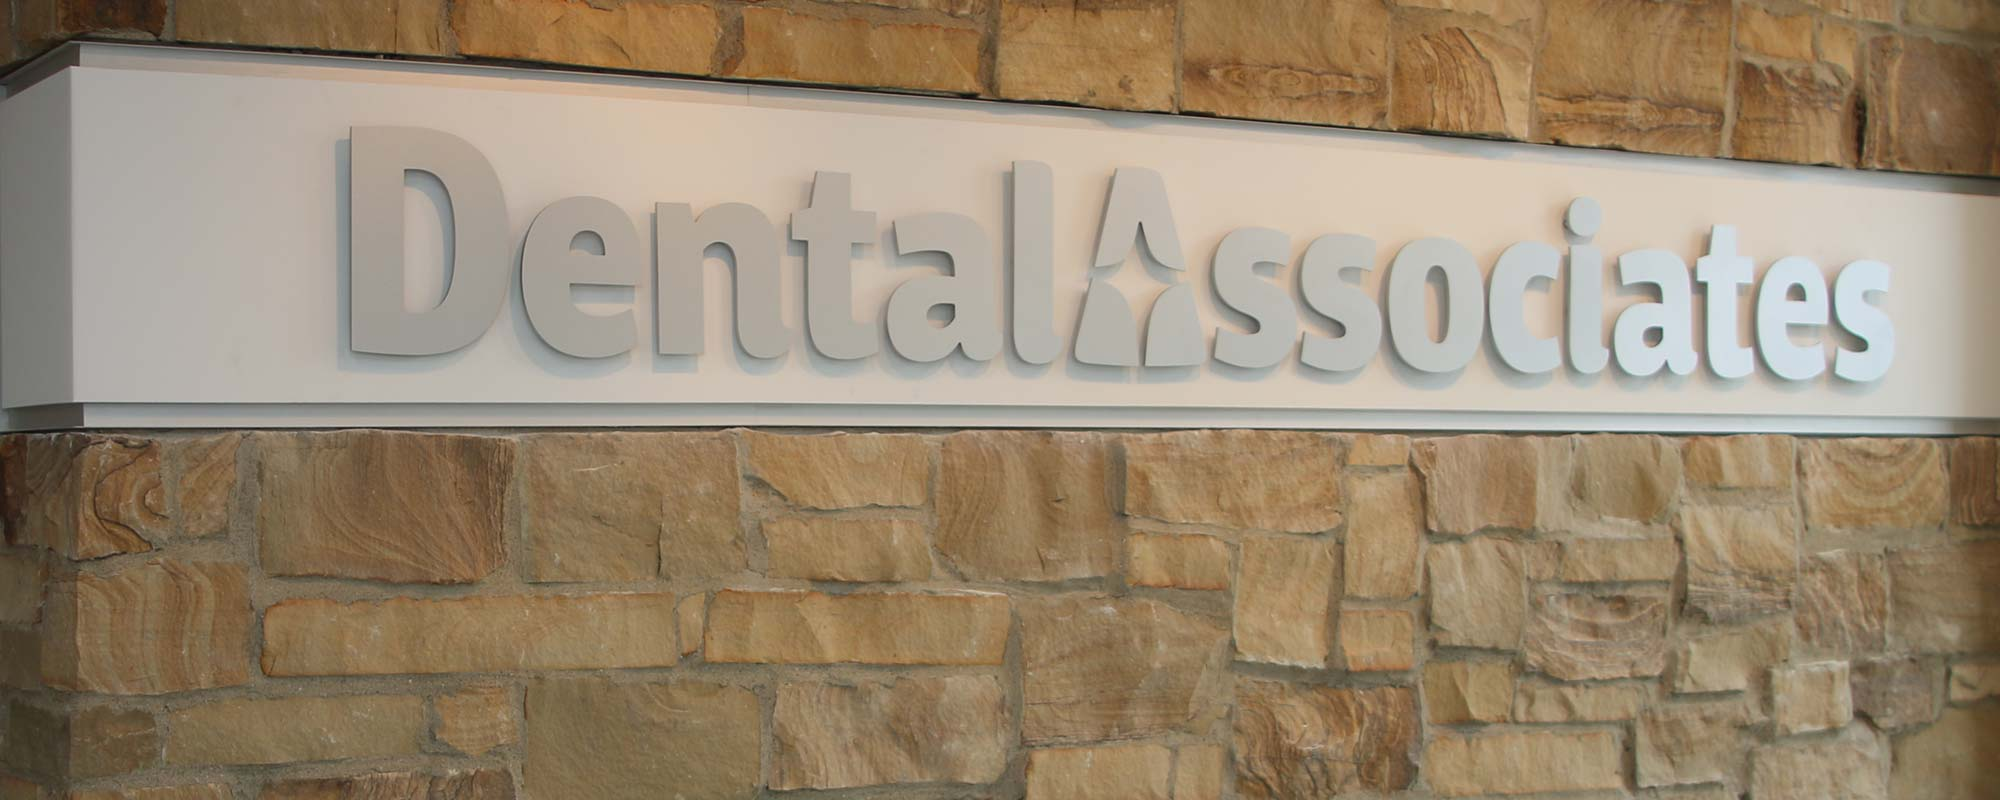 Tour Dental Associates Alsip brand new dental center on 111st Street.